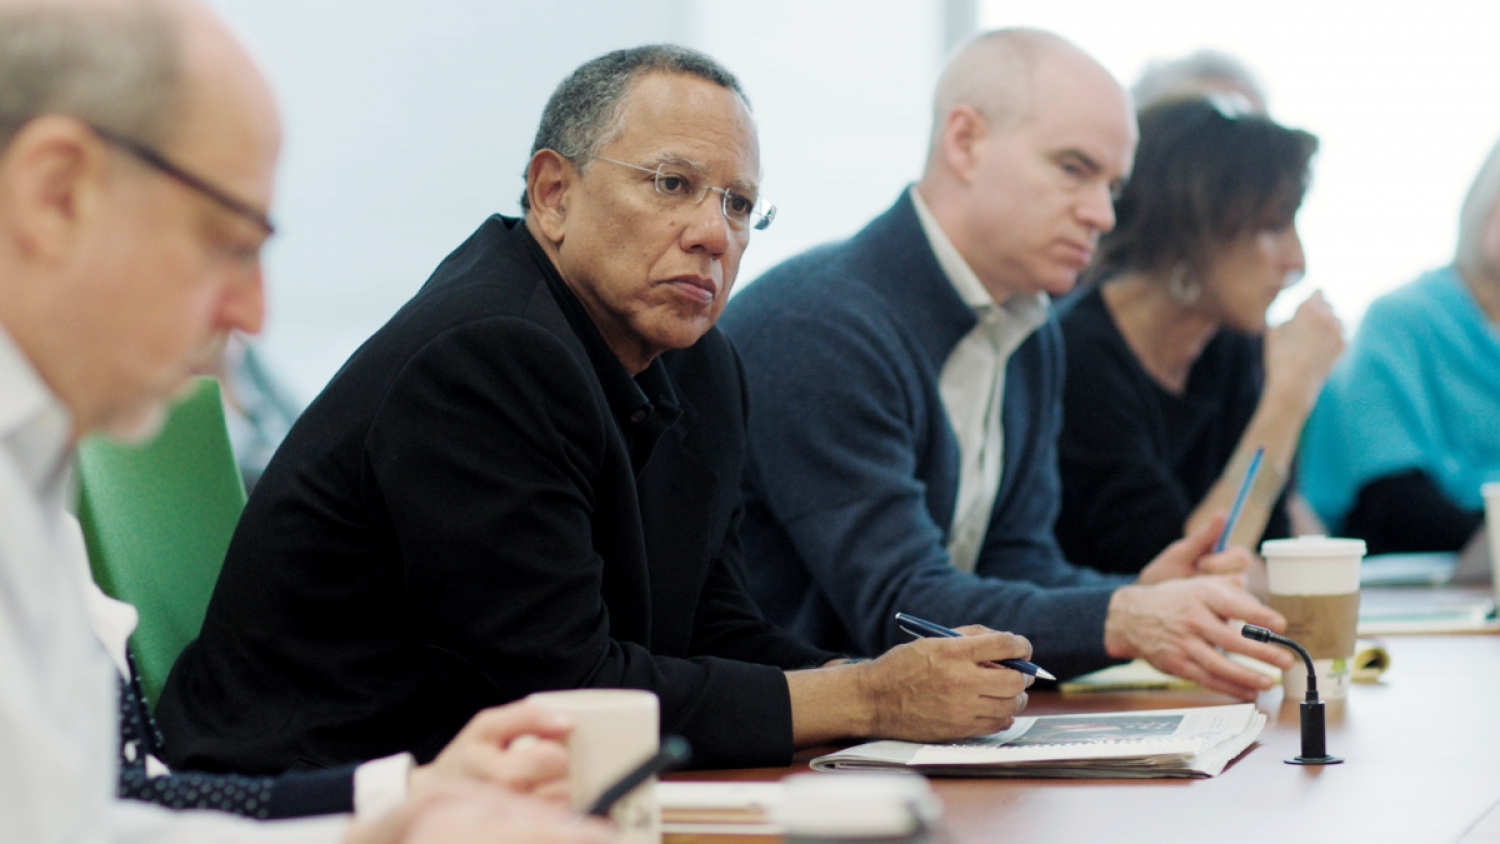 Times Execeutive Editor Dean Baquet (second from left) overseeing a meeting. From Liz Garbus and Jenny Carchman's 'The Fourth Estate,' currently airing on Showtime. Courtesy of Showtime